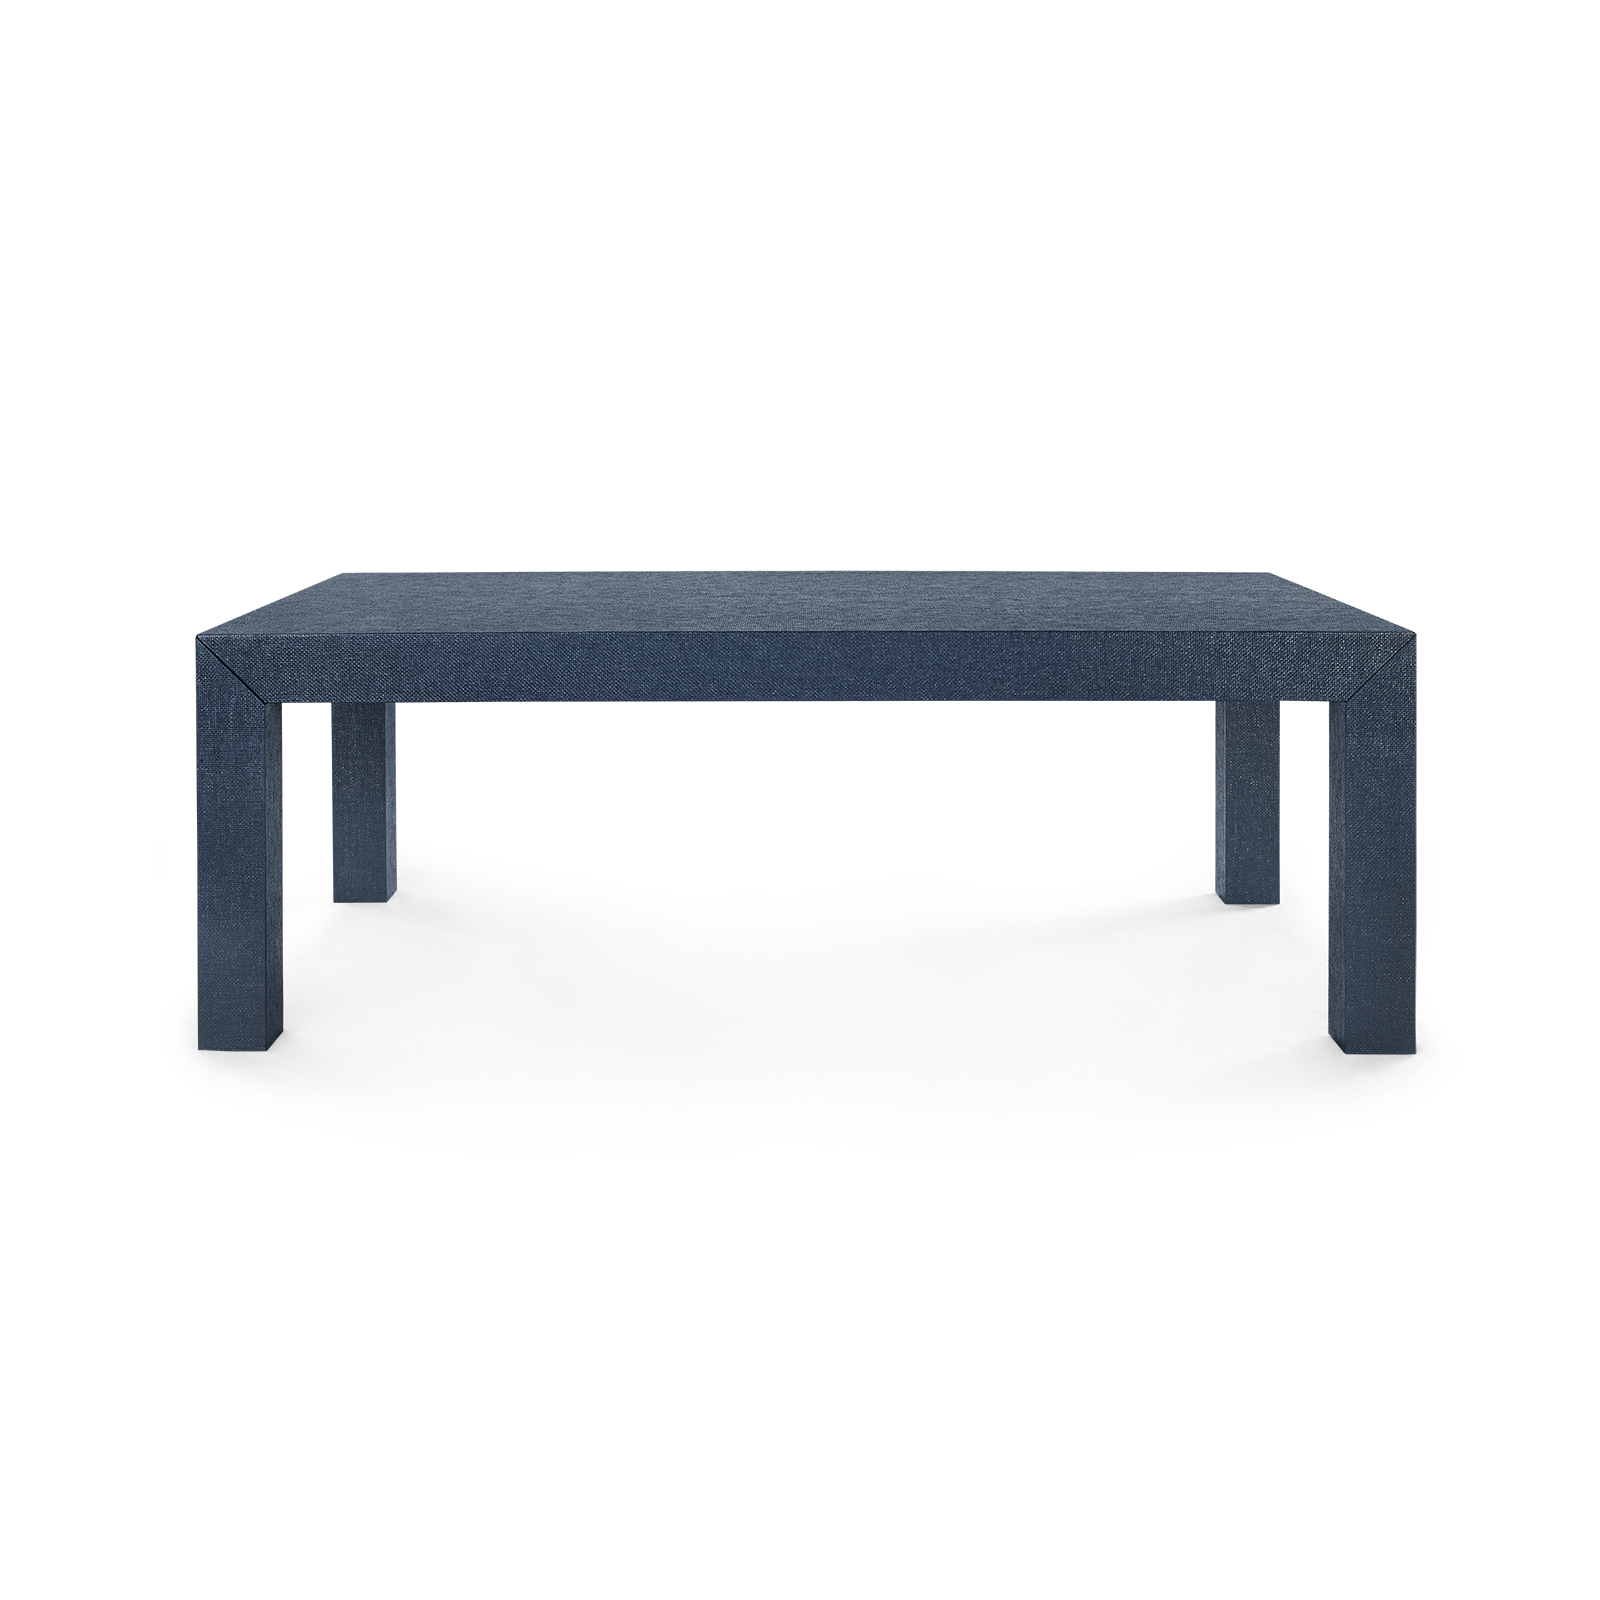 Parson coffee table in navy blue bungalow 5 -